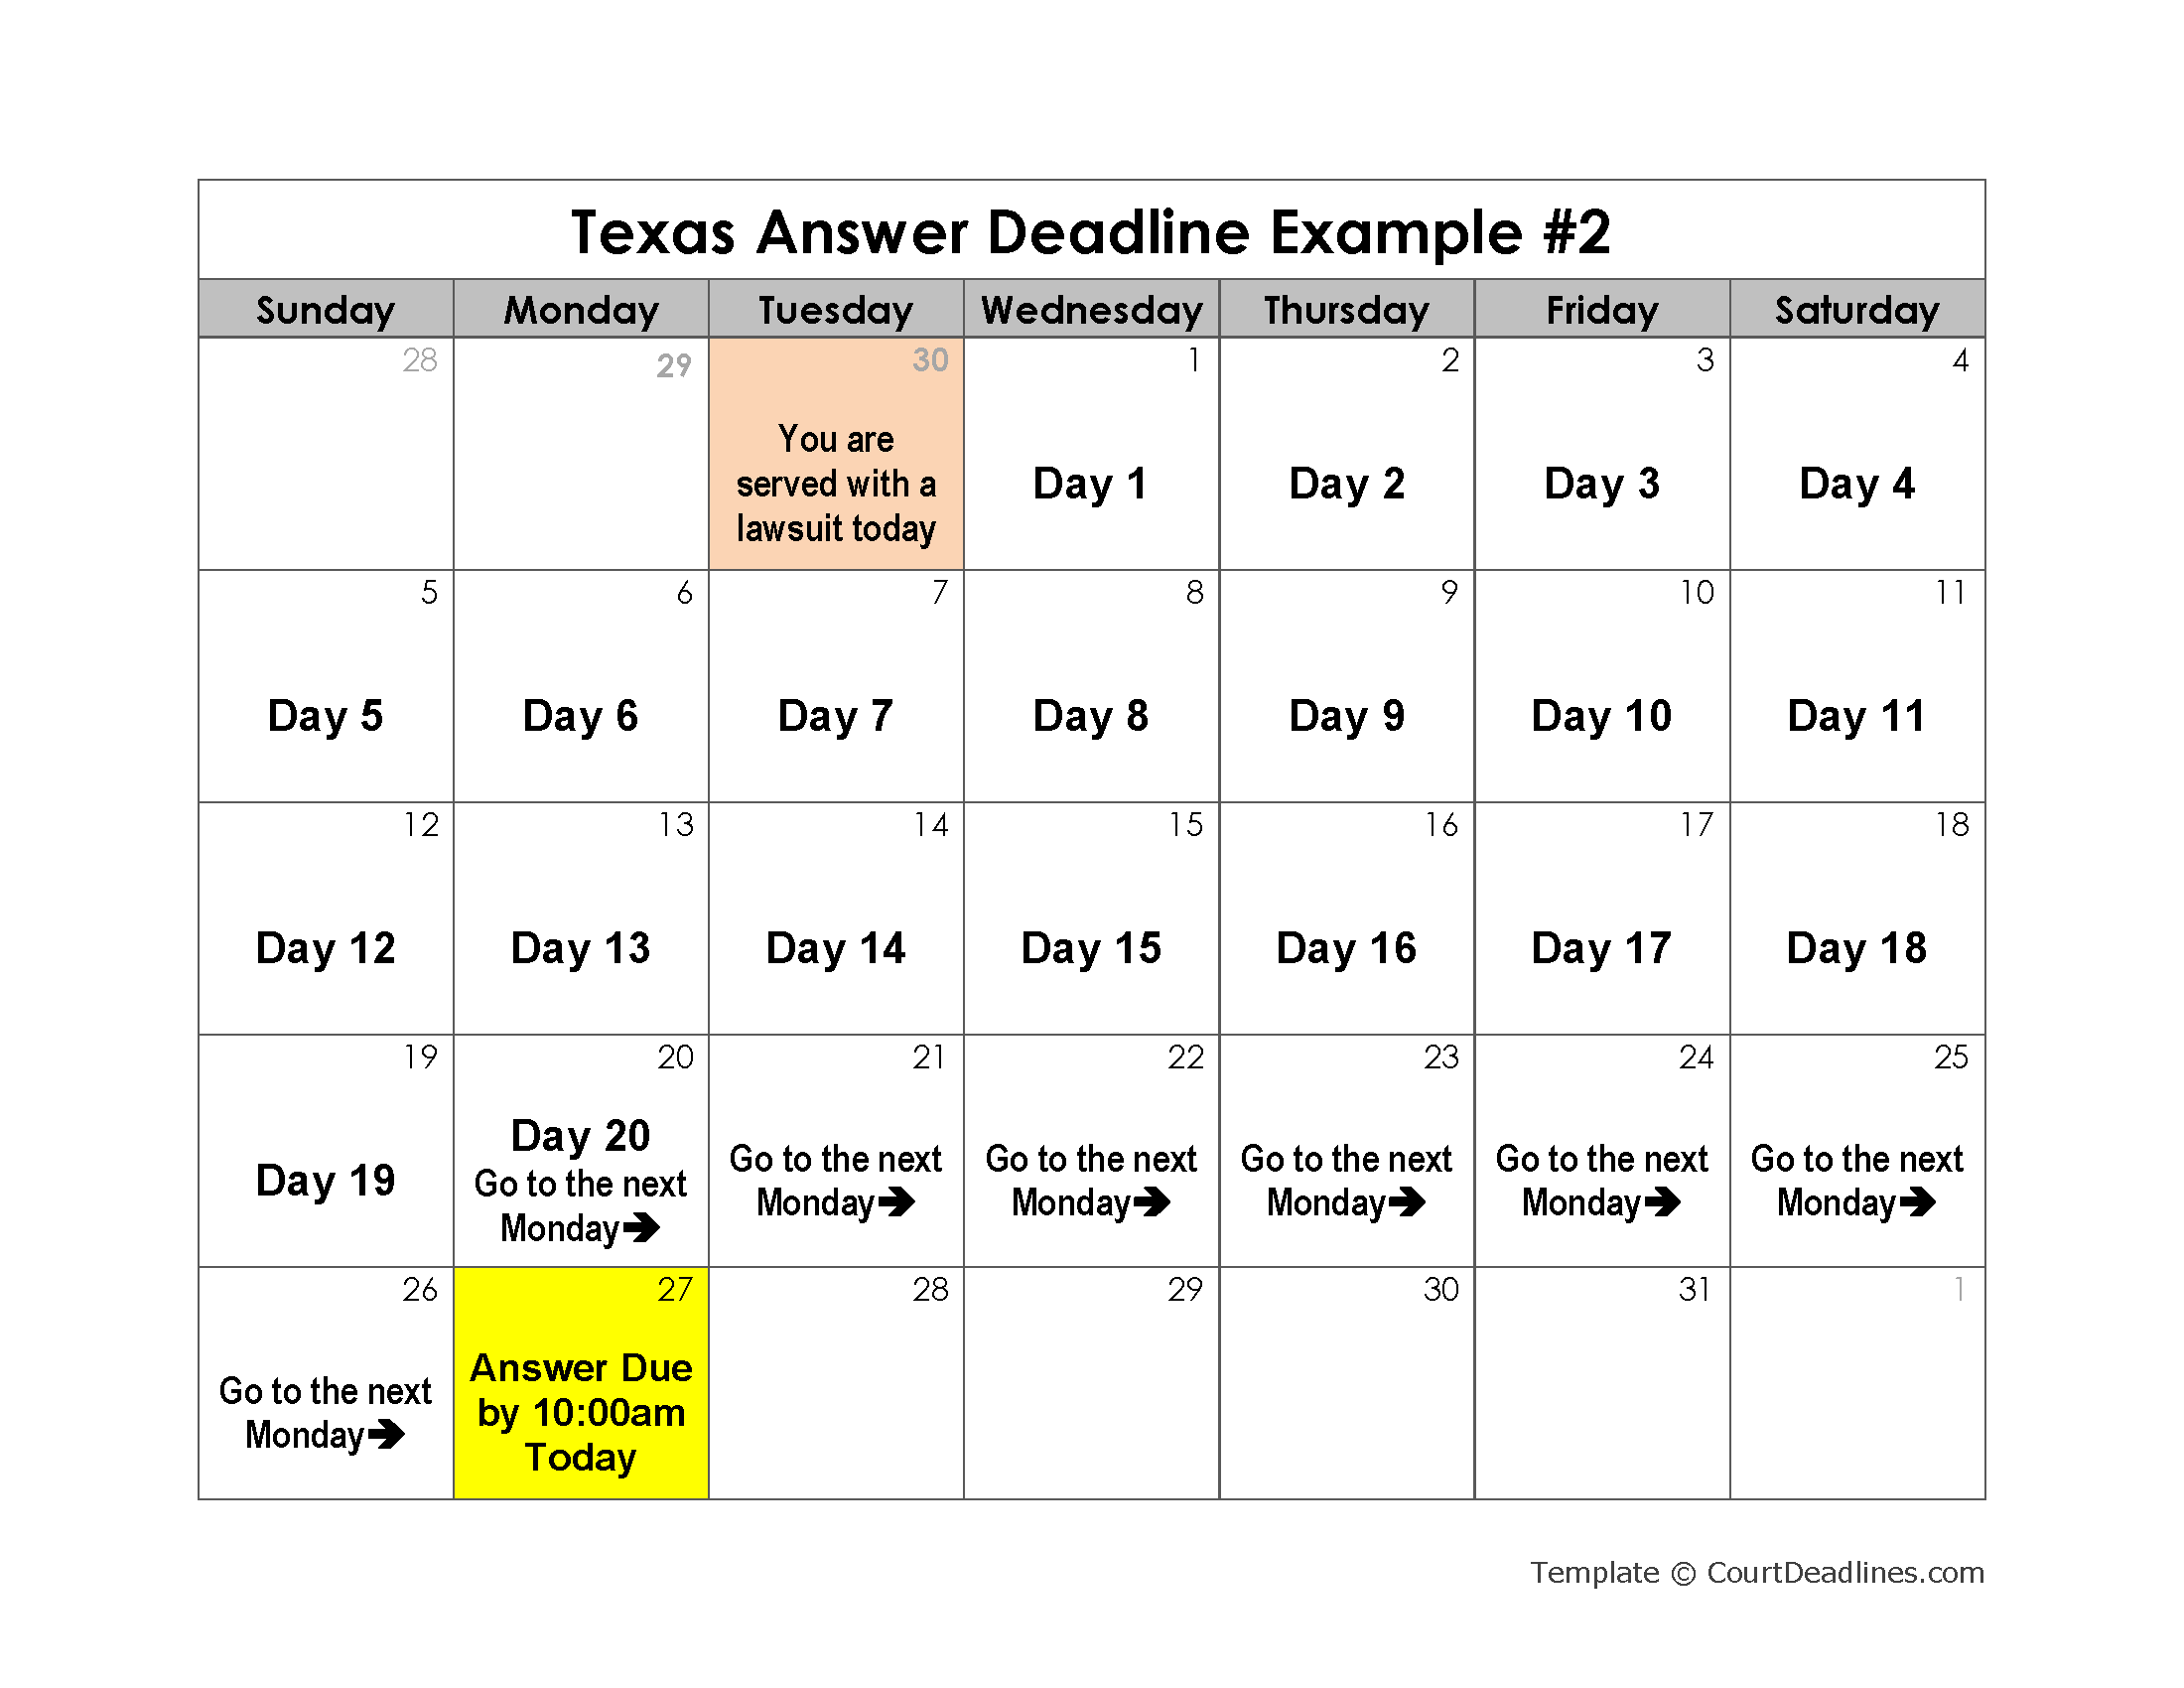 Texas Answer Deadline Example 2